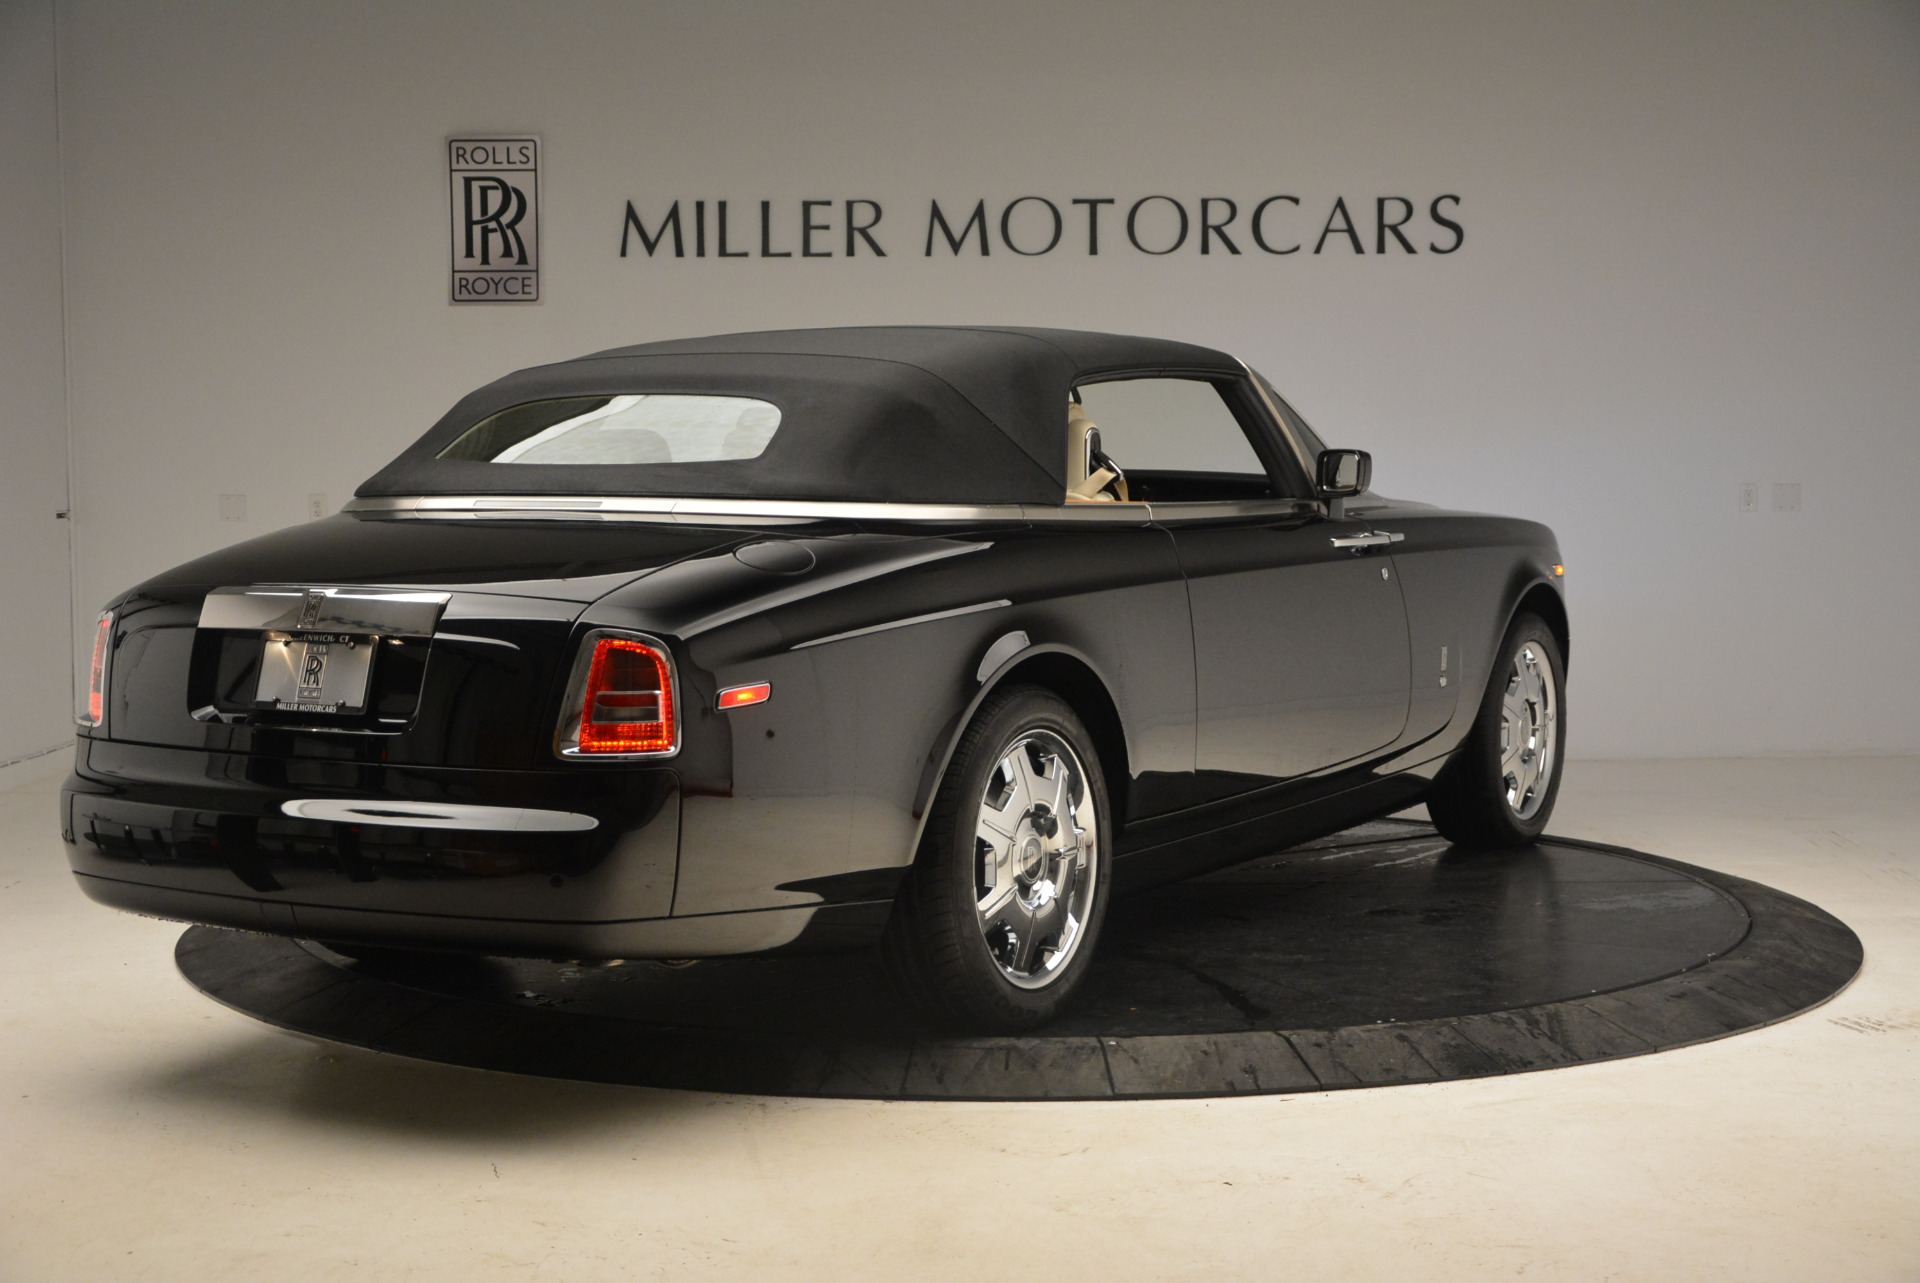 Used 2009 Rolls-Royce Phantom Drophead Coupe  For Sale In Westport, CT 1792_p19